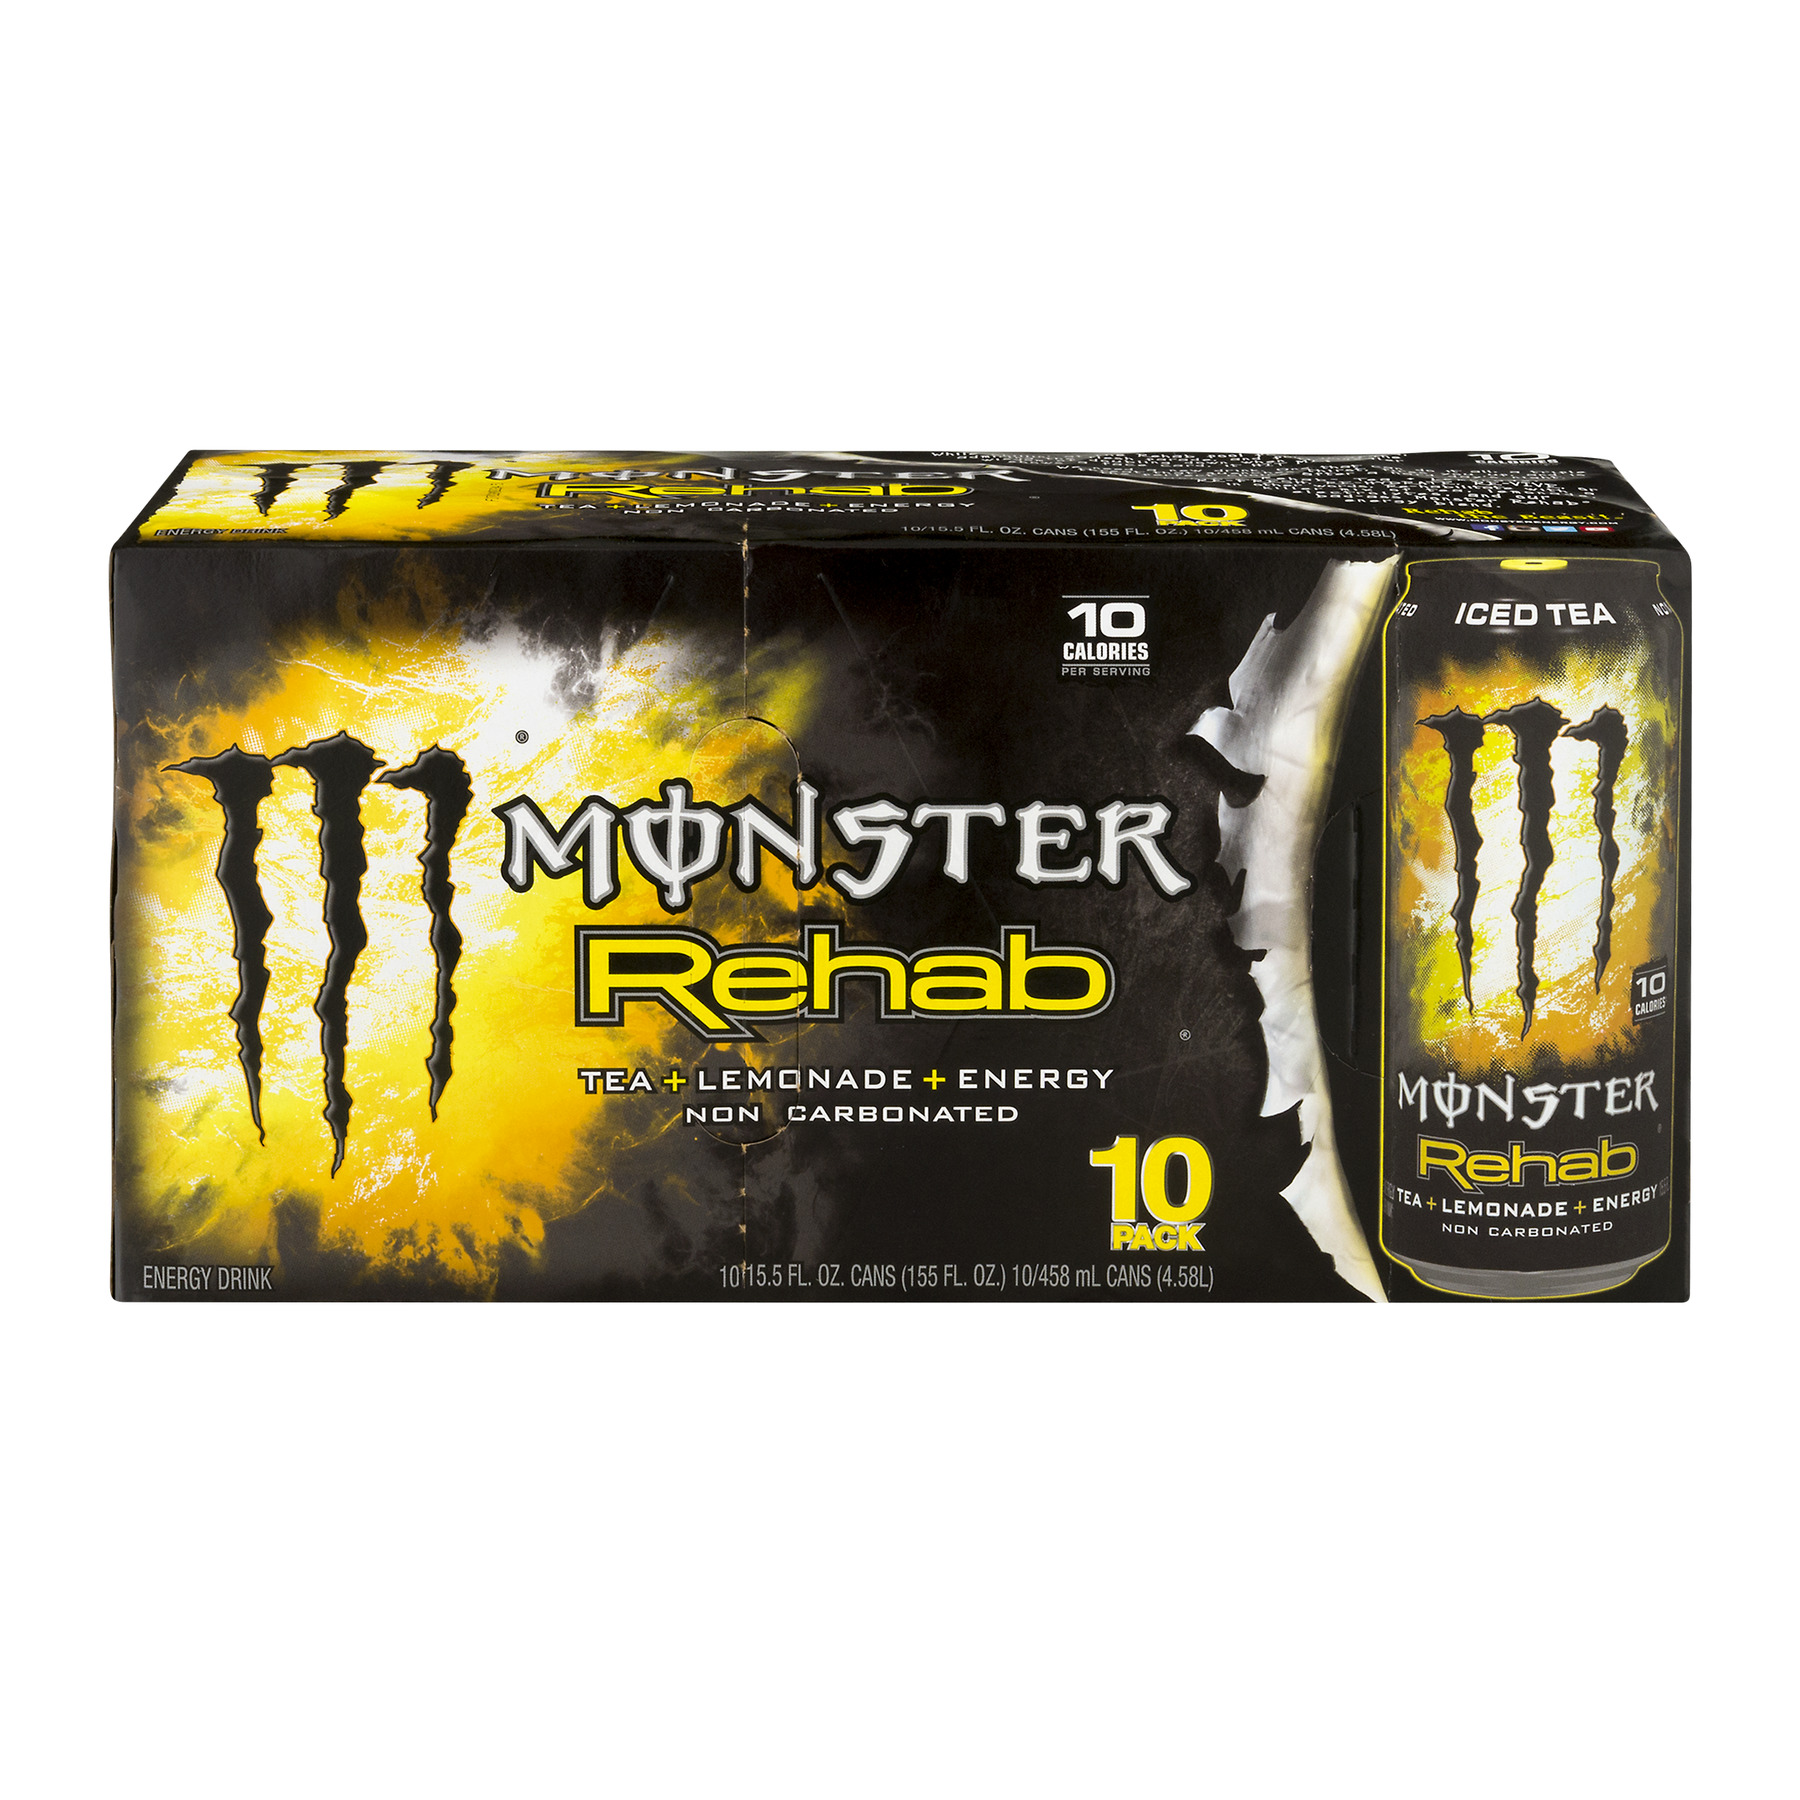 Monster Rehab Energy Drink, Tea + Lemonade, 15.5 Fl Oz, 10 Count